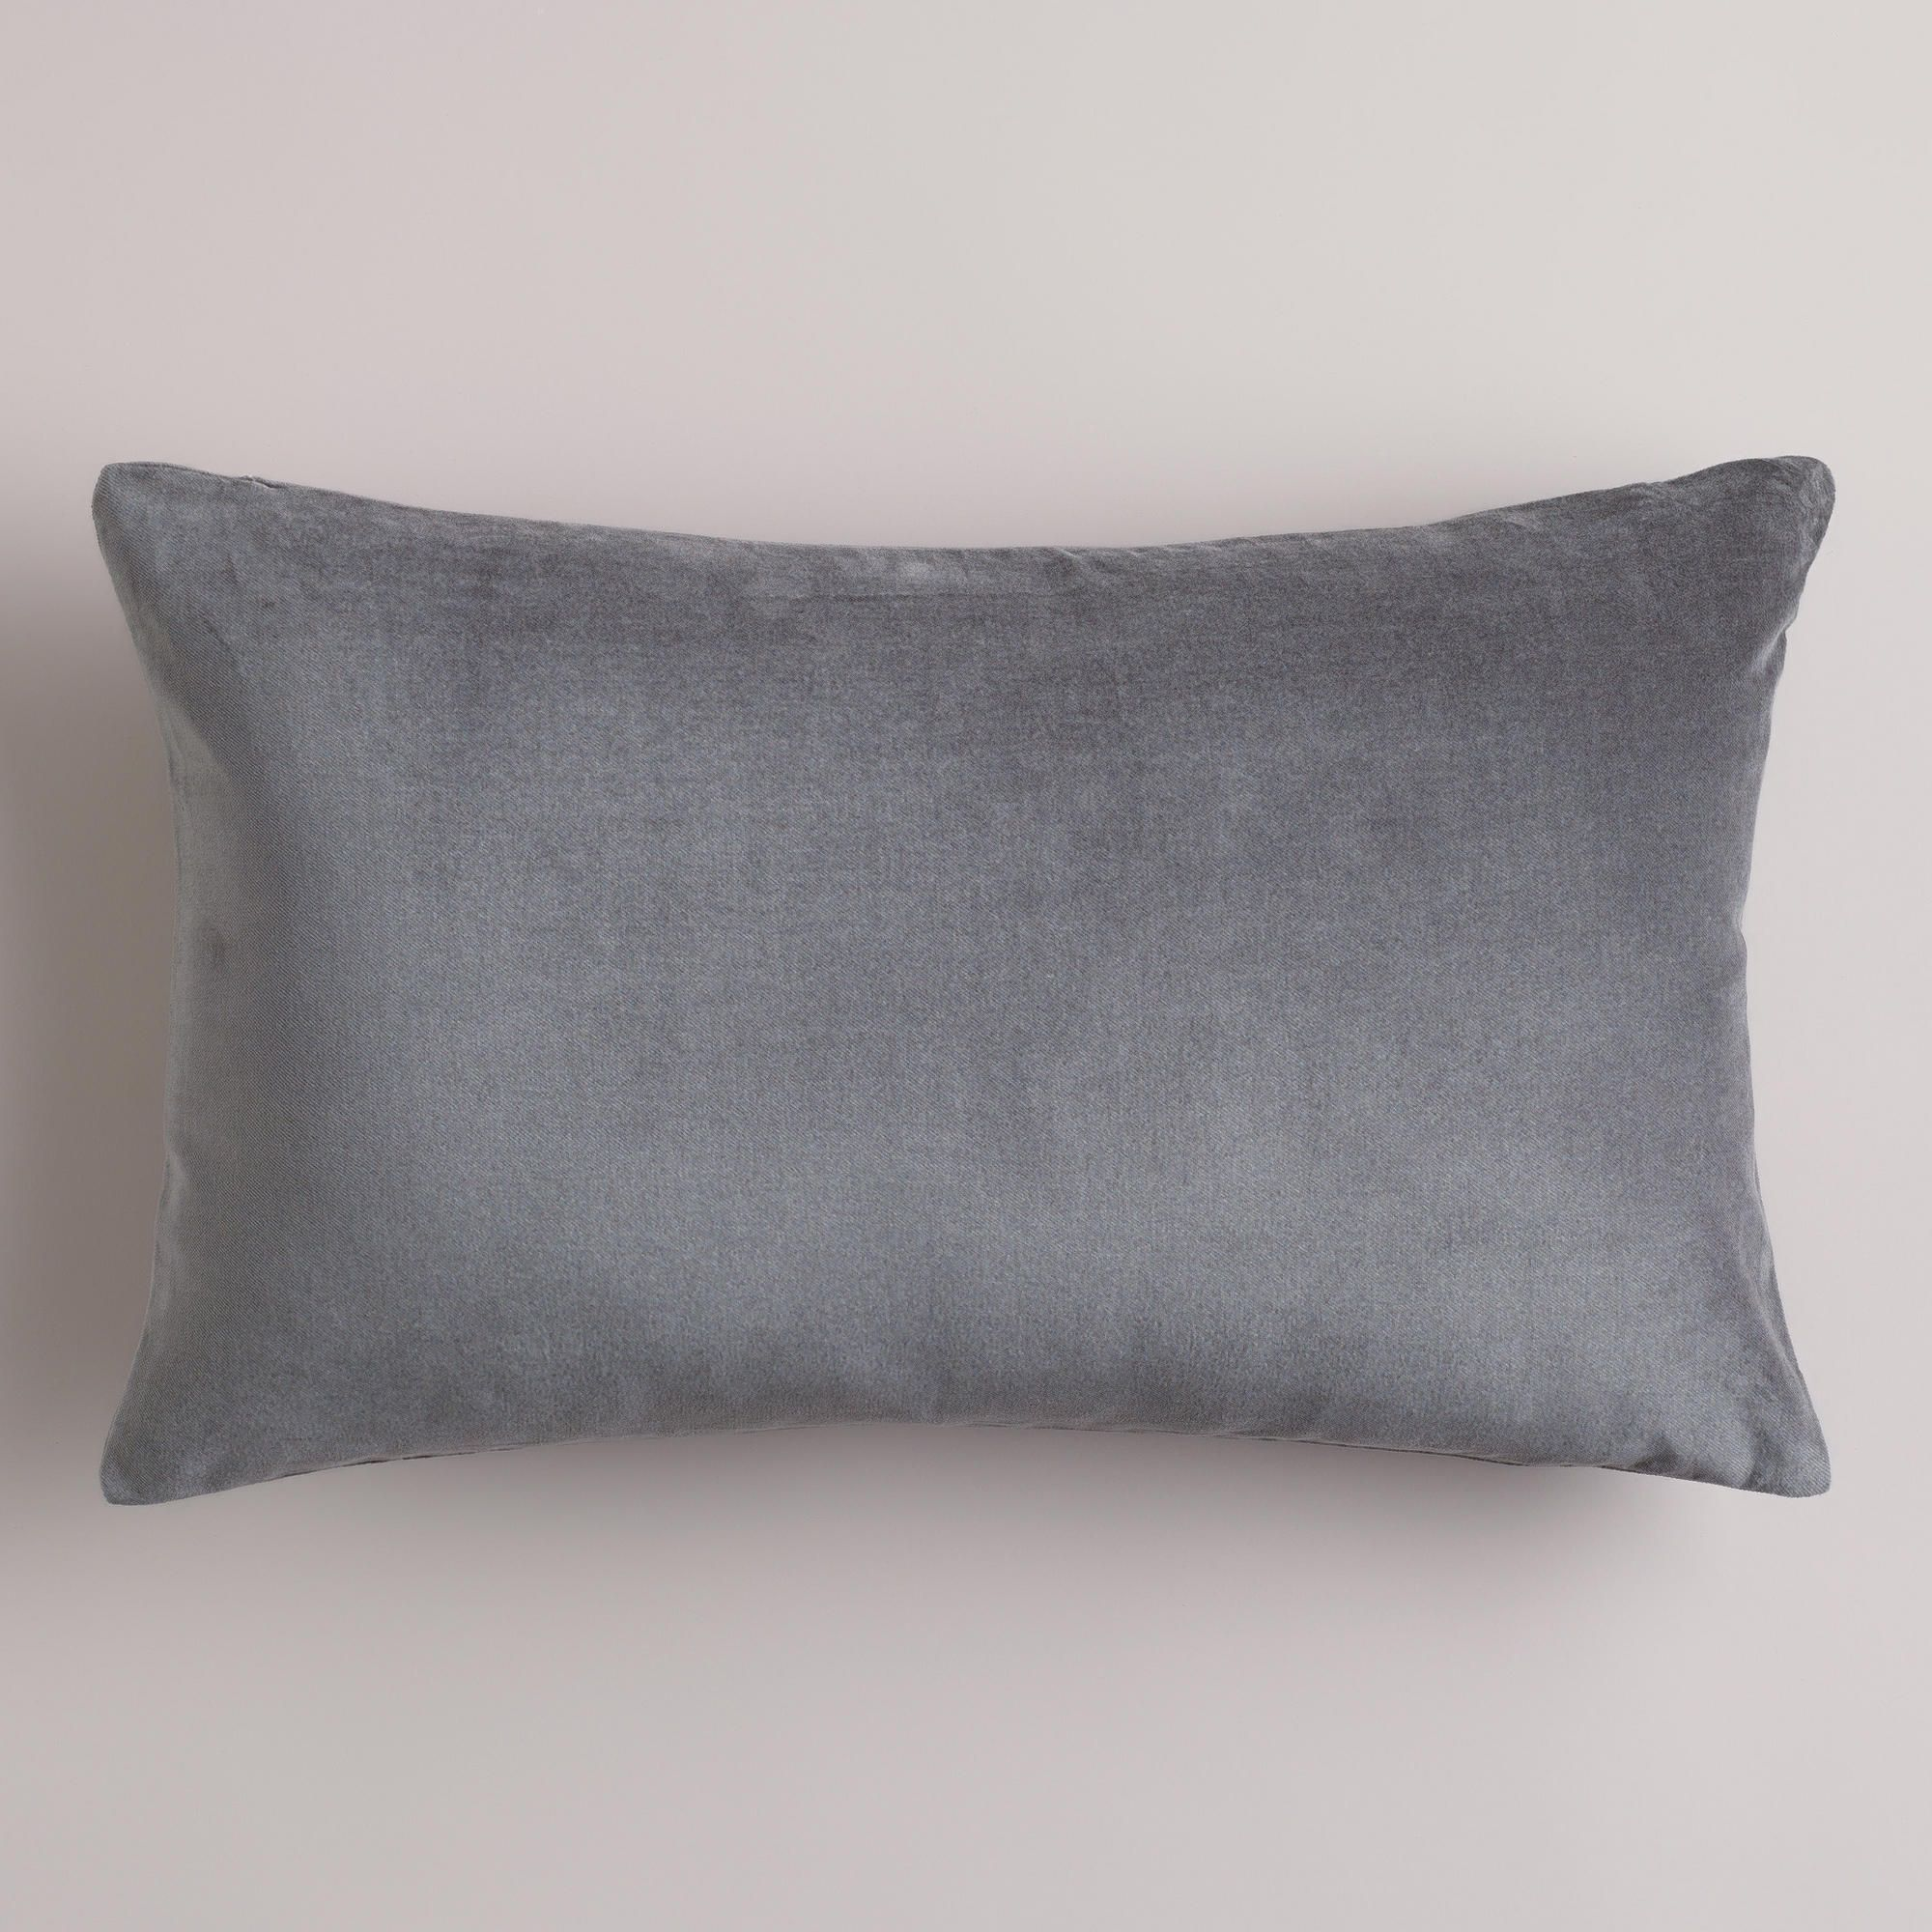 16 99 tornado gray velvet lumbar pillow world market project